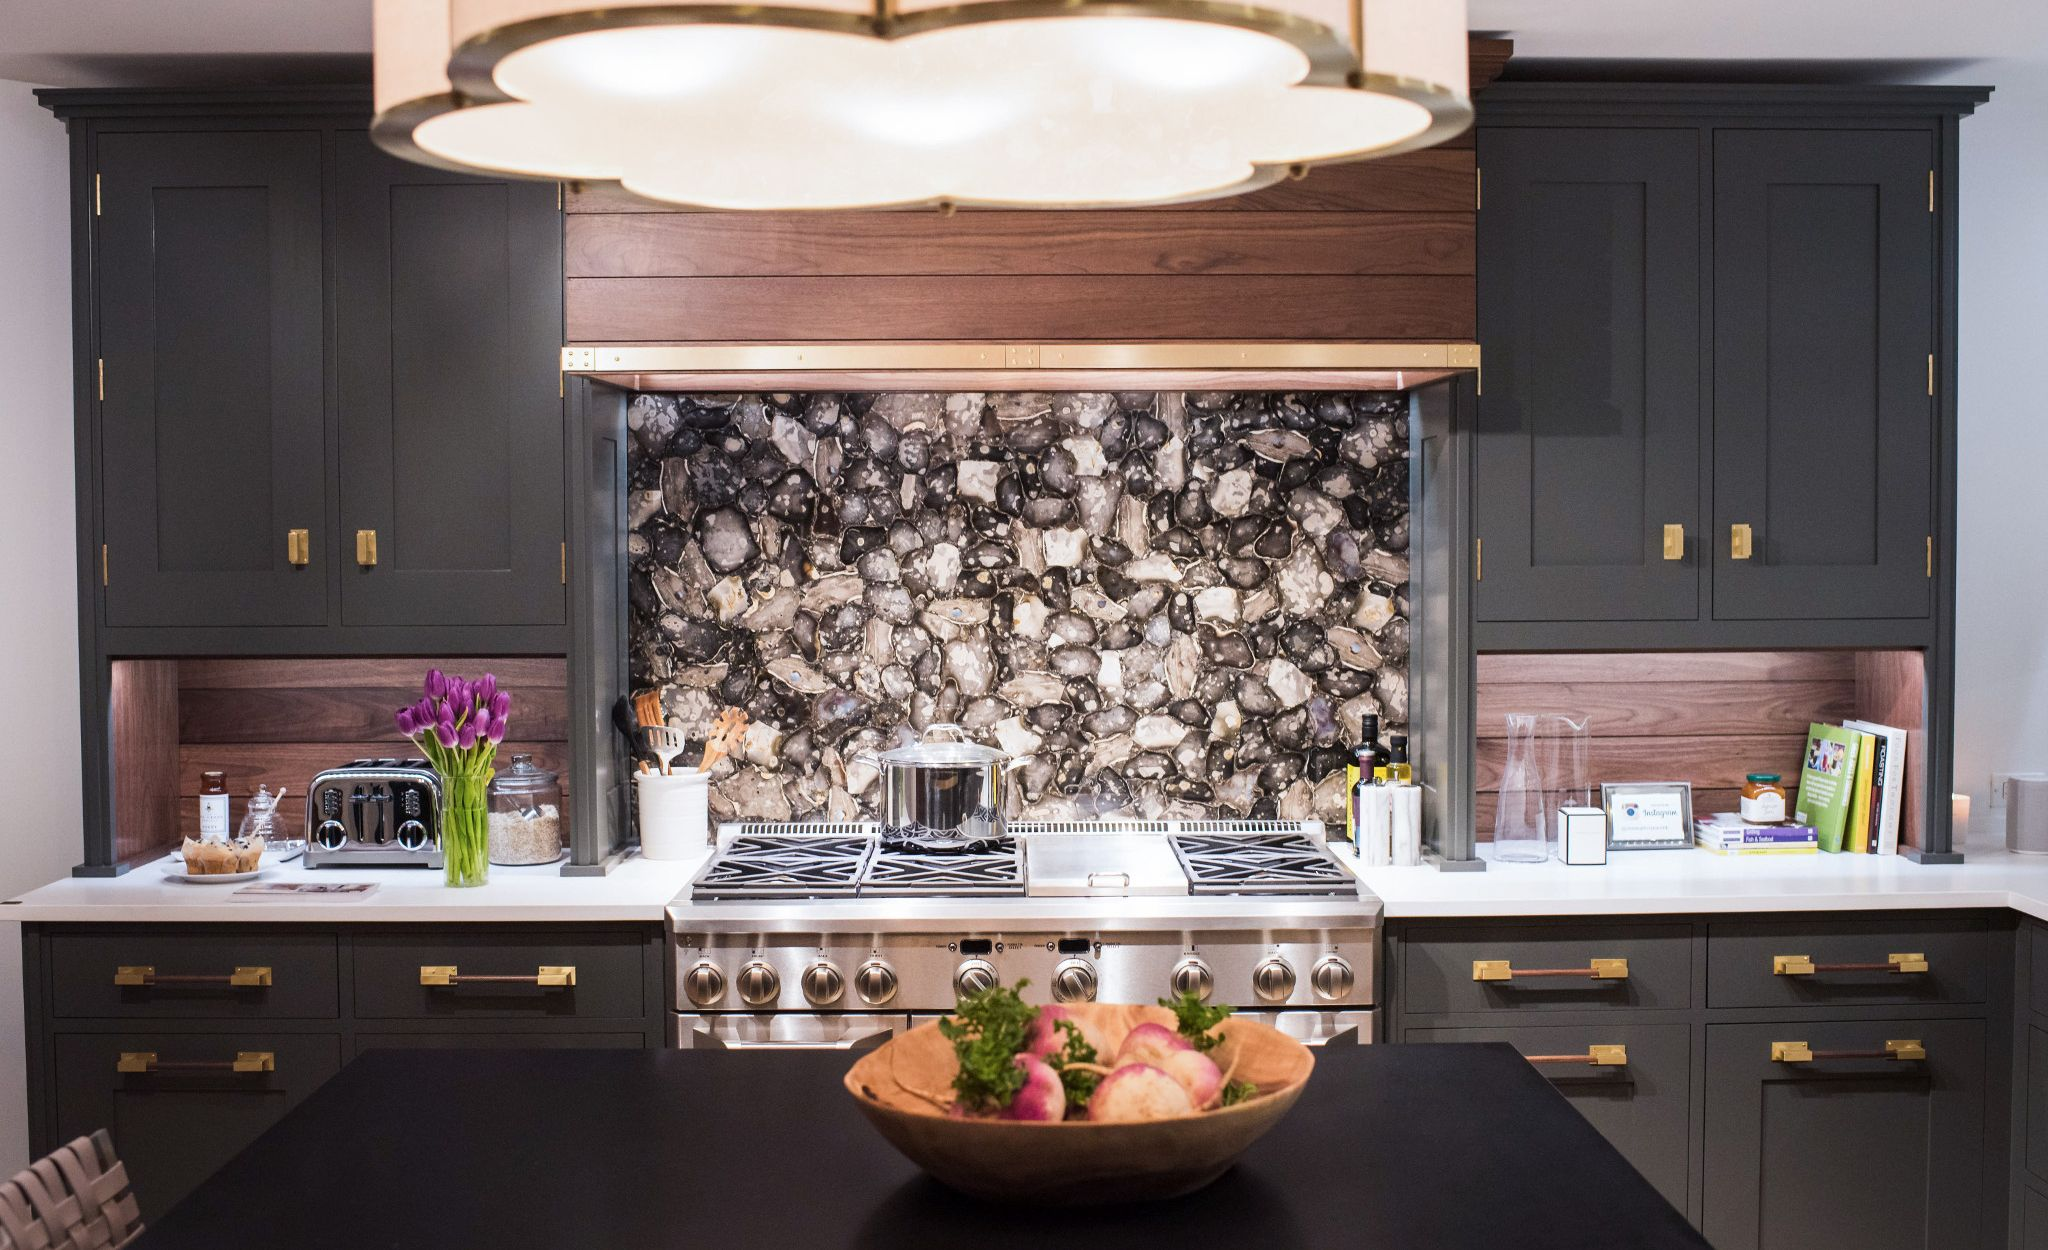 Brass accents create elegant and cohesive kitchen motif, from the hardware to the range hood and light fixture.